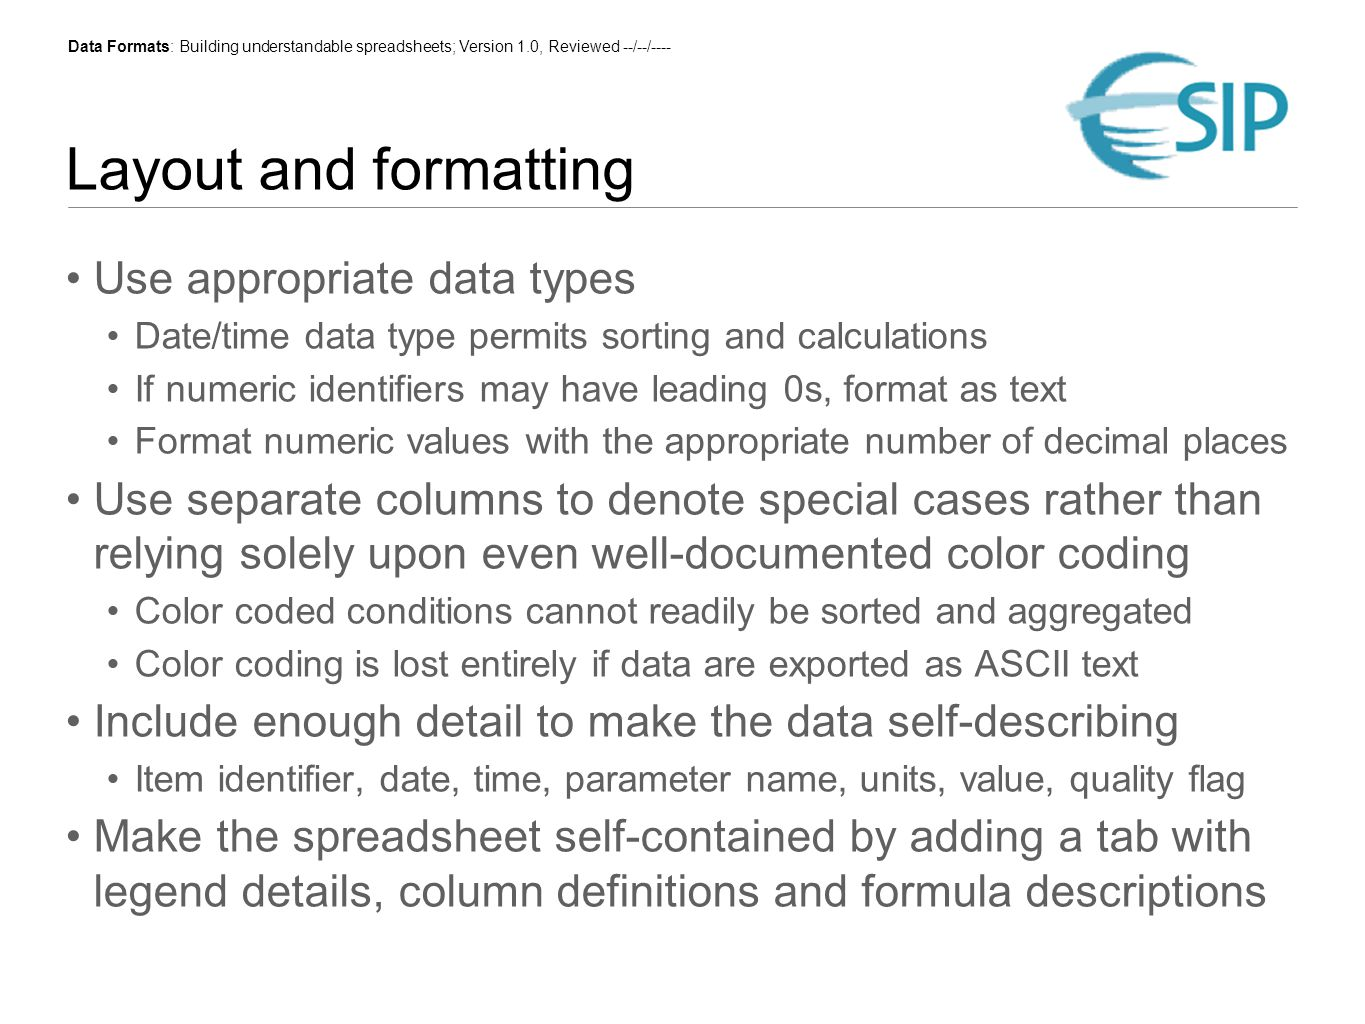 Data Formats: Building understandable spreadsheets; Version 1.0, Reviewed --/--/---- Layout and formatting Use appropriate data types Date/time data type permits sorting and calculations If numeric identifiers may have leading 0s, format as text Format numeric values with the appropriate number of decimal places Use separate columns to denote special cases rather than relying solely upon even well-documented color coding Color coded conditions cannot readily be sorted and aggregated Color coding is lost entirely if data are exported as ASCII text Include enough detail to make the data self-describing Item identifier, date, time, parameter name, units, value, quality flag Make the spreadsheet self-contained by adding a tab with legend details, column definitions and formula descriptions